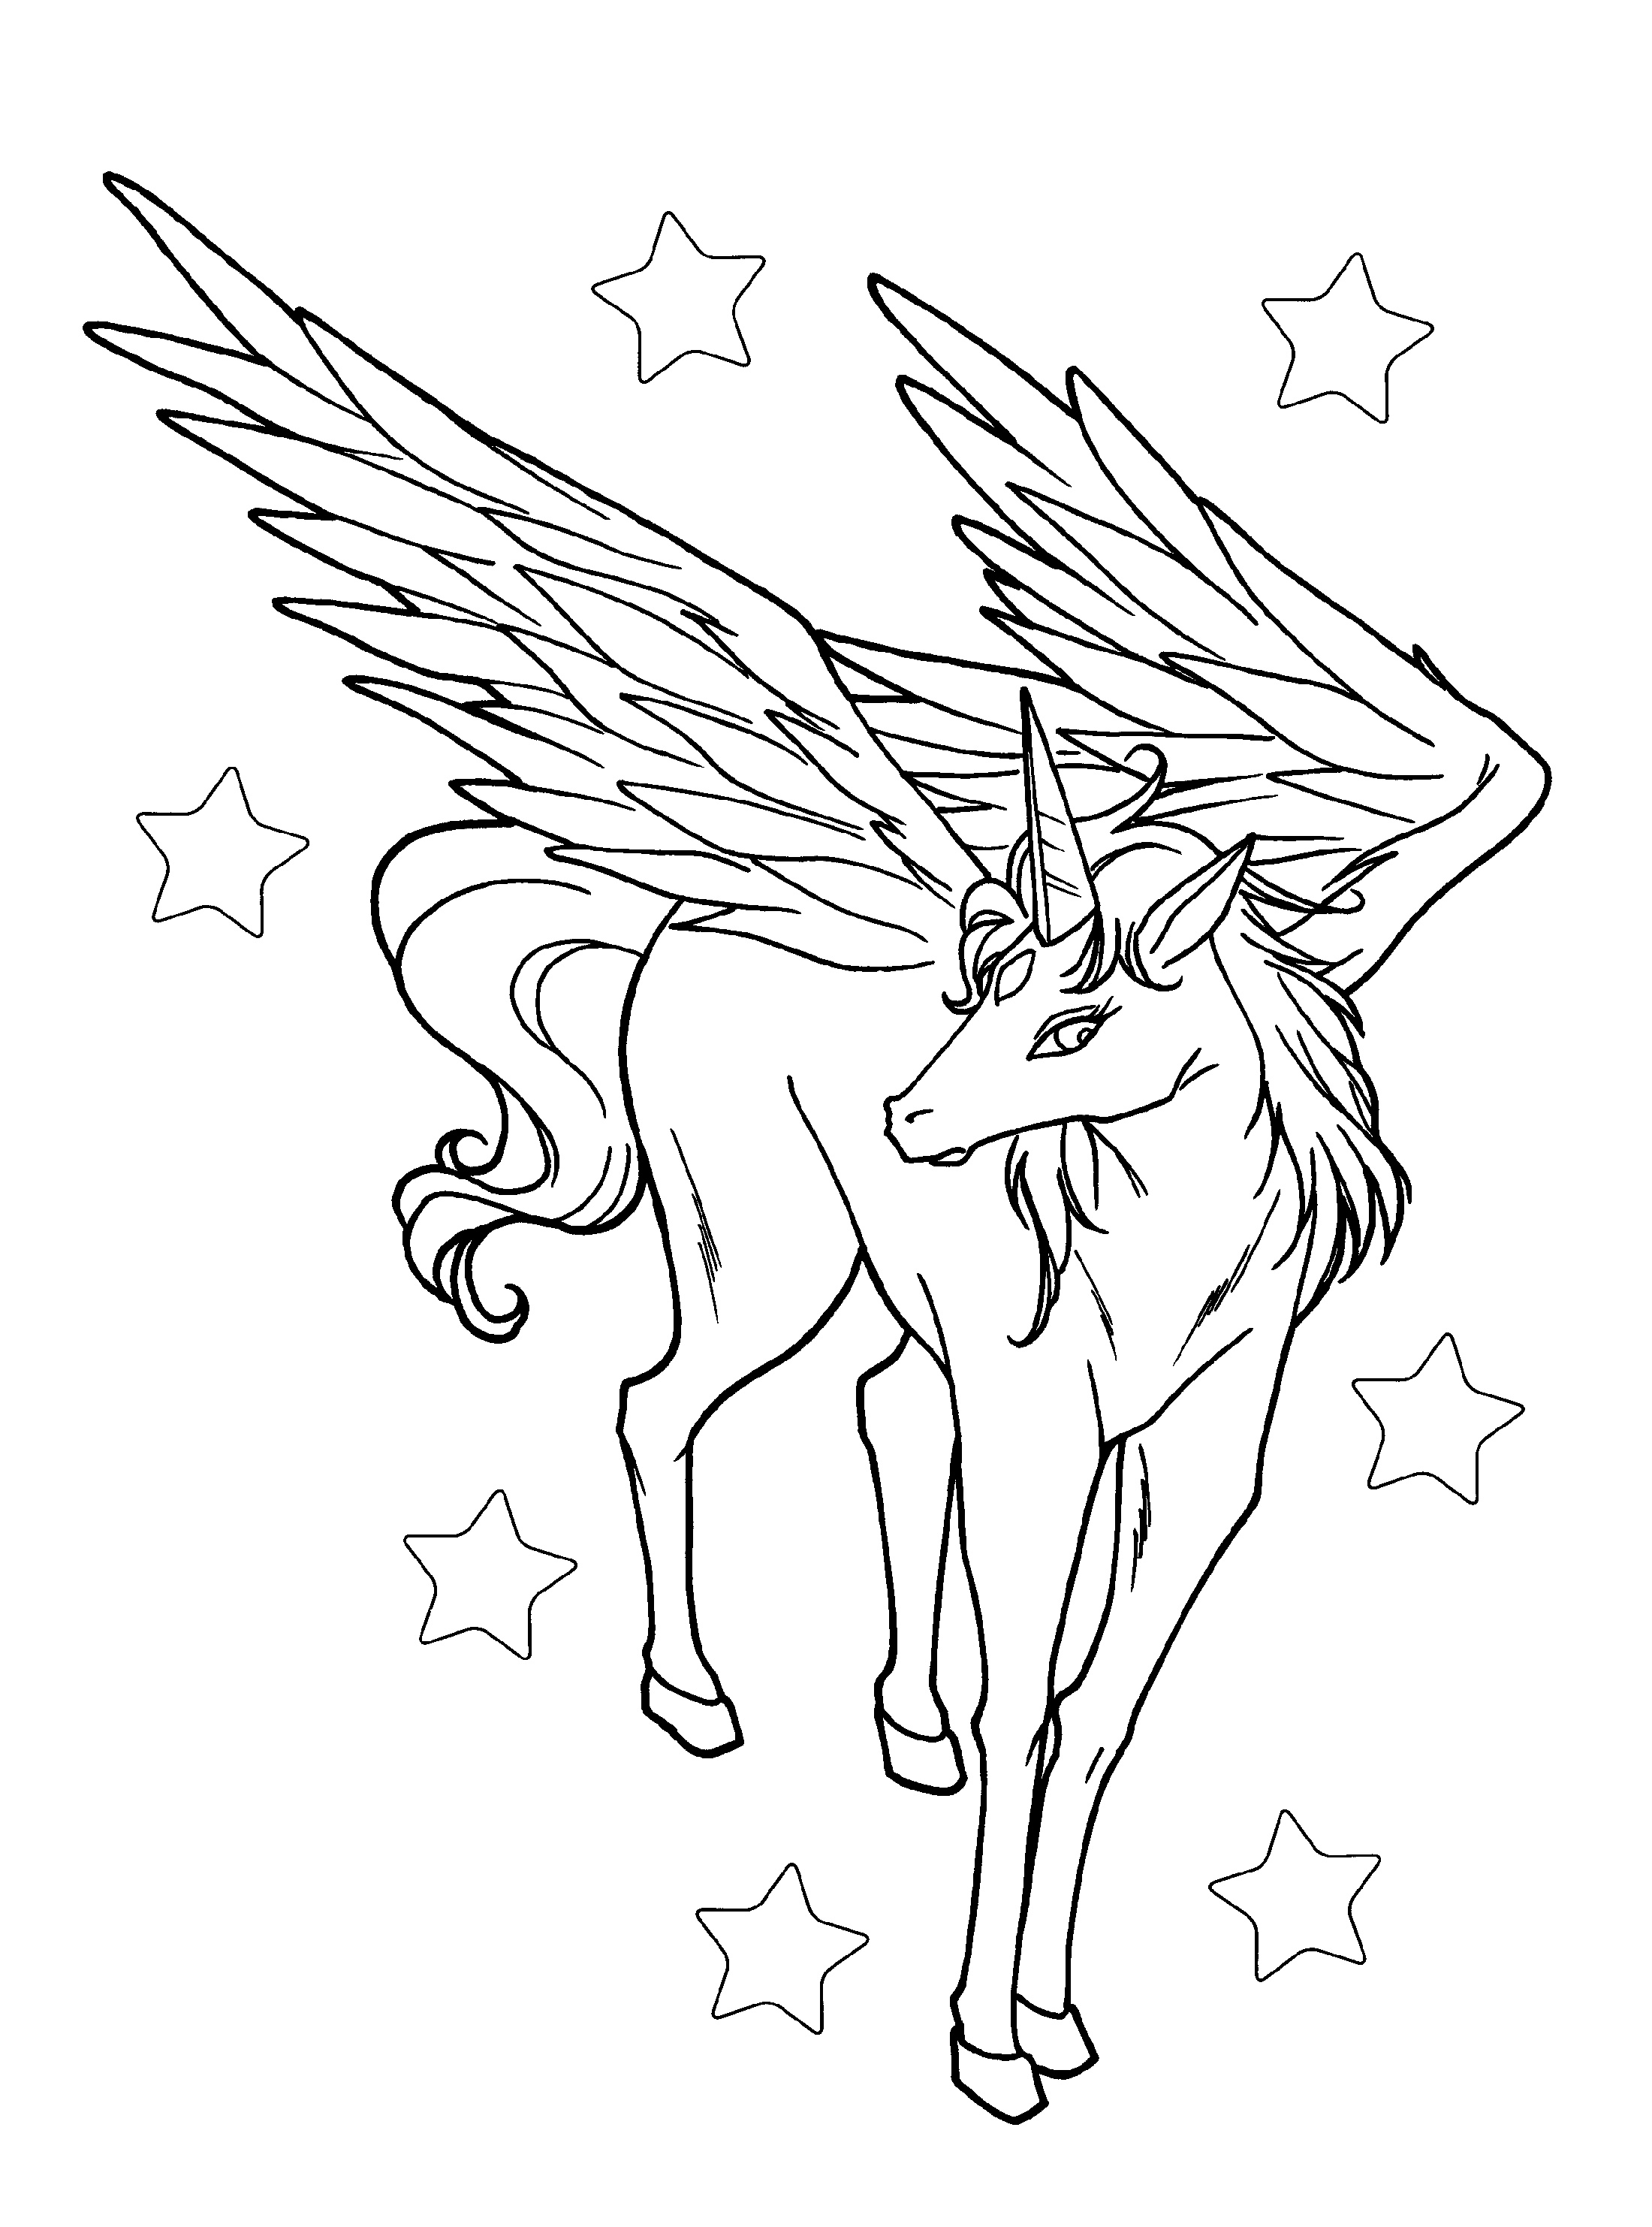 Unicorn-Coloring-To-Print.